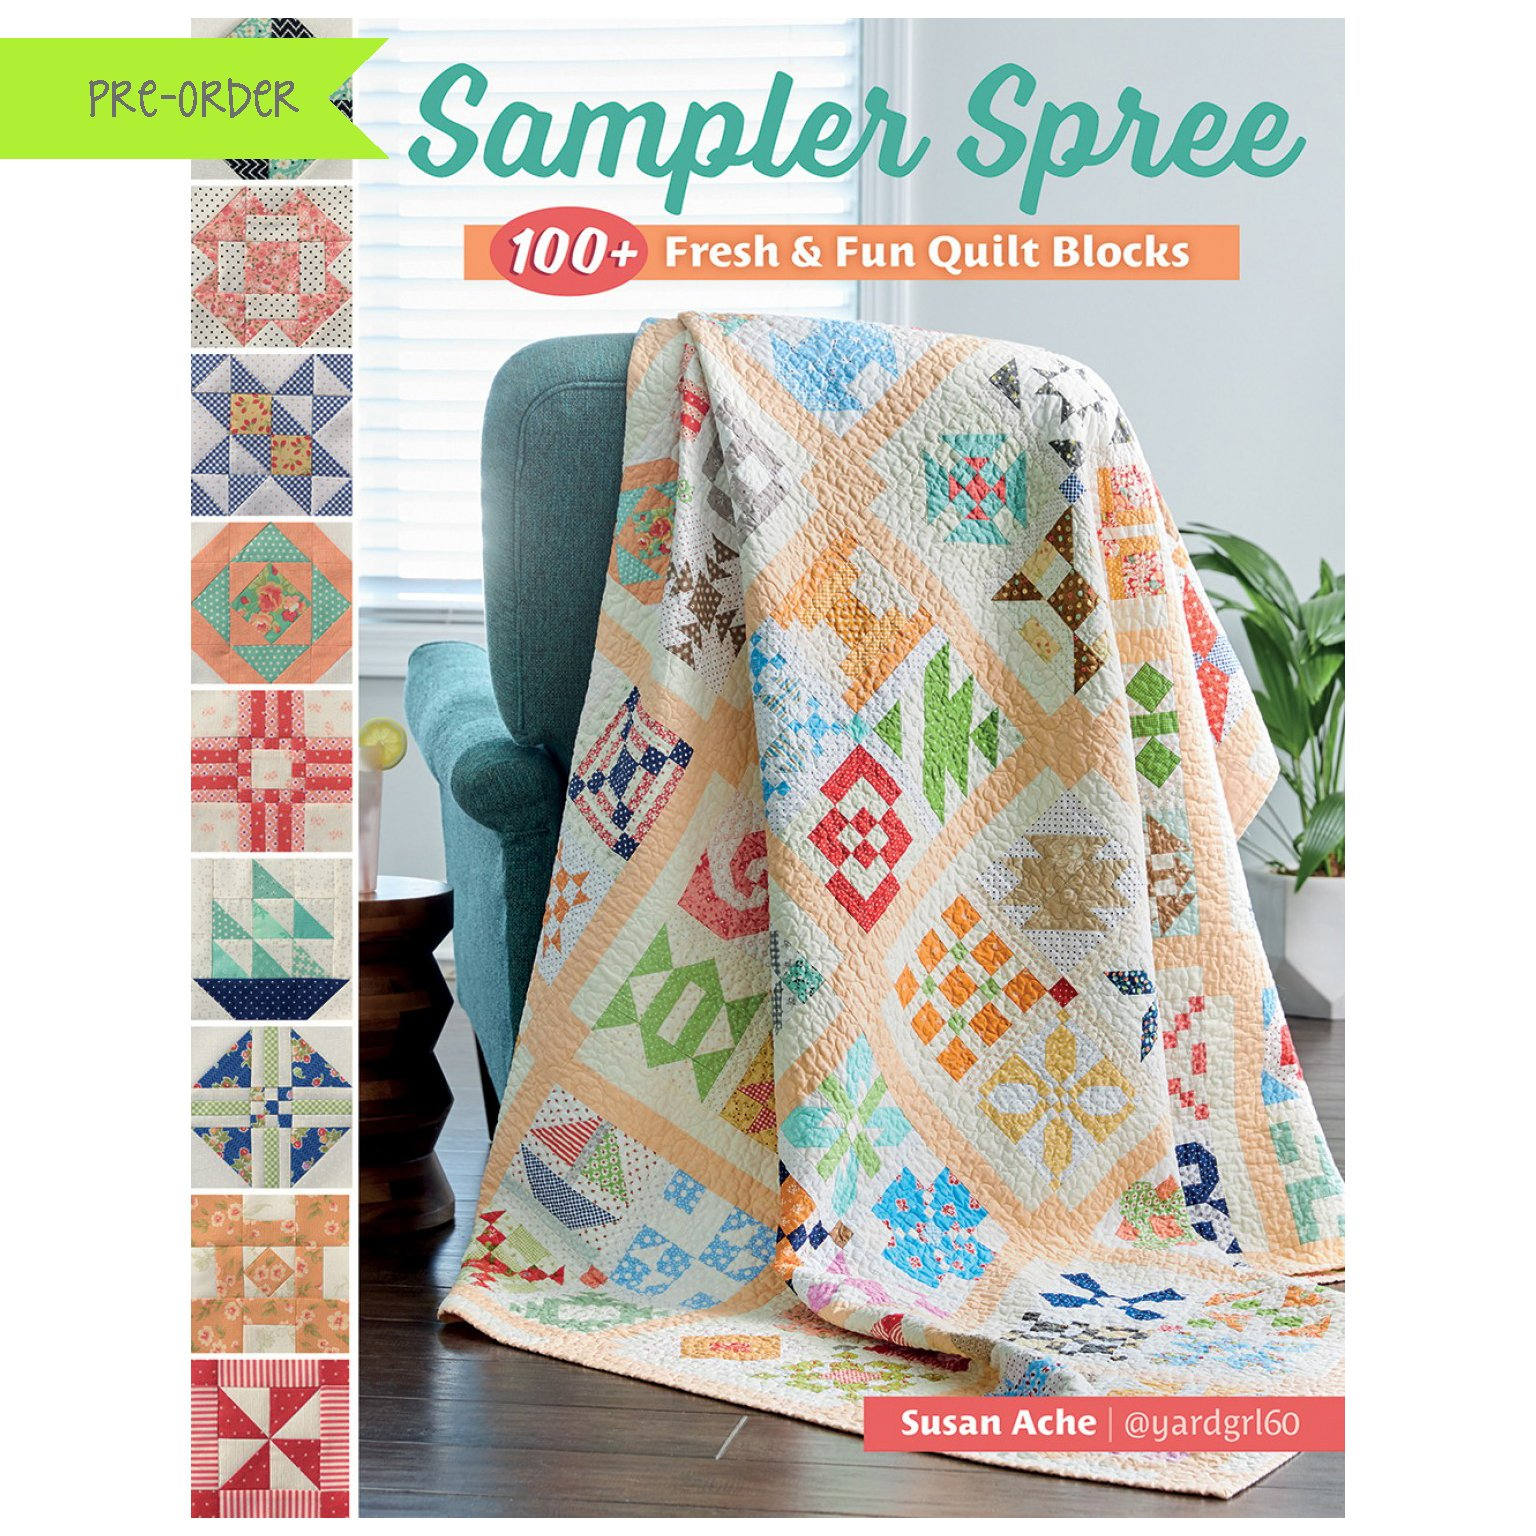 Sampler Spree Quilt Book by Susan Ache